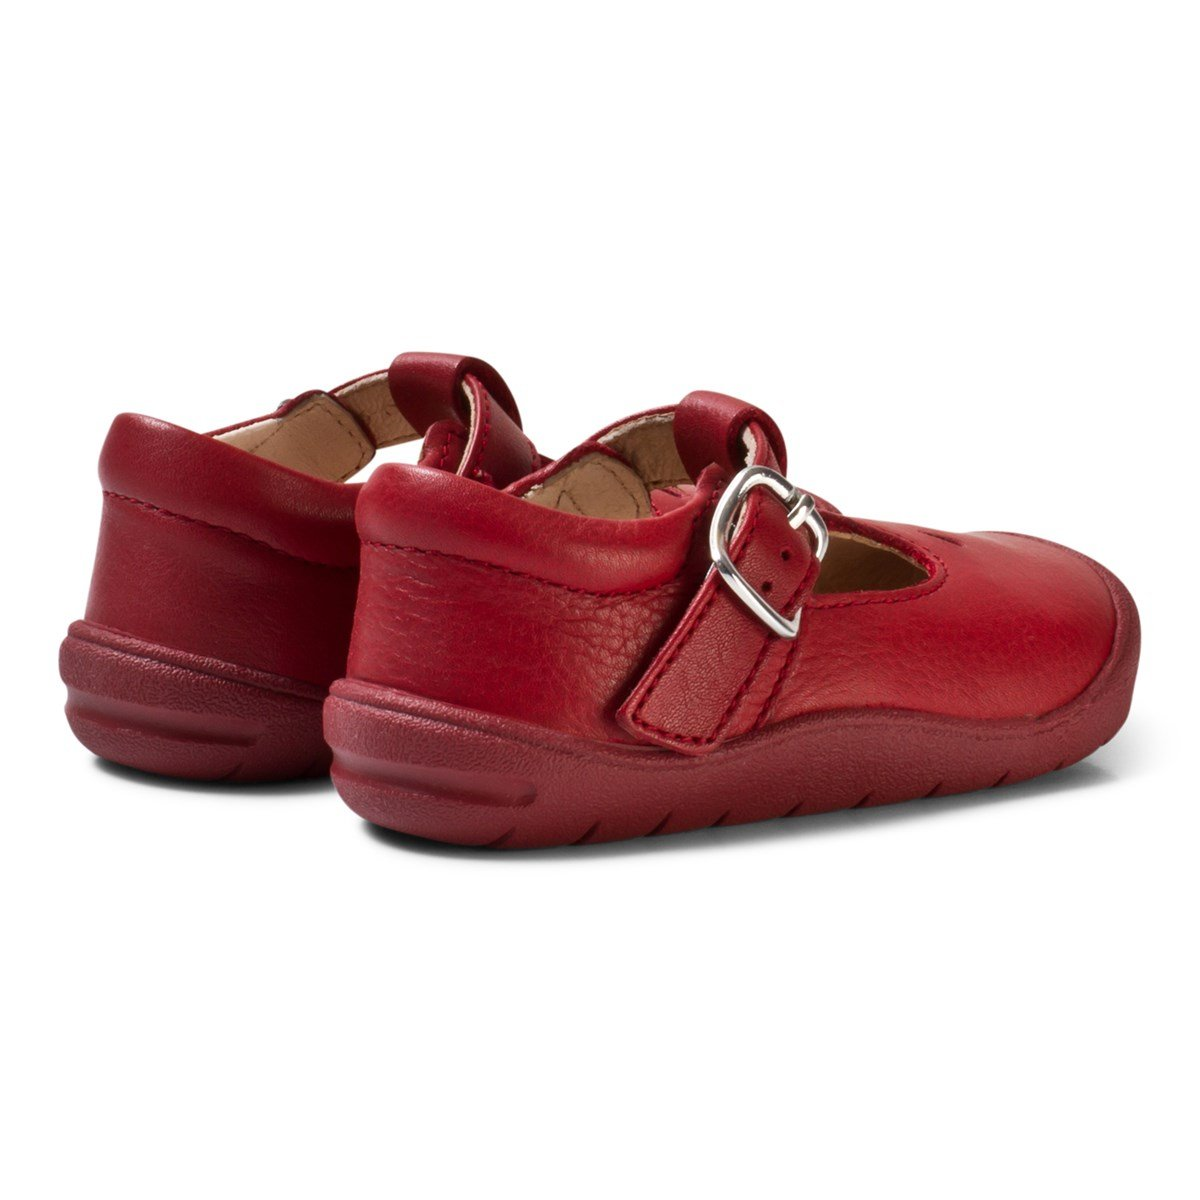 655d6b36d2d4f Start-rite Red and Silver Leather Evy First Steps Shoes | AlexandAlexa